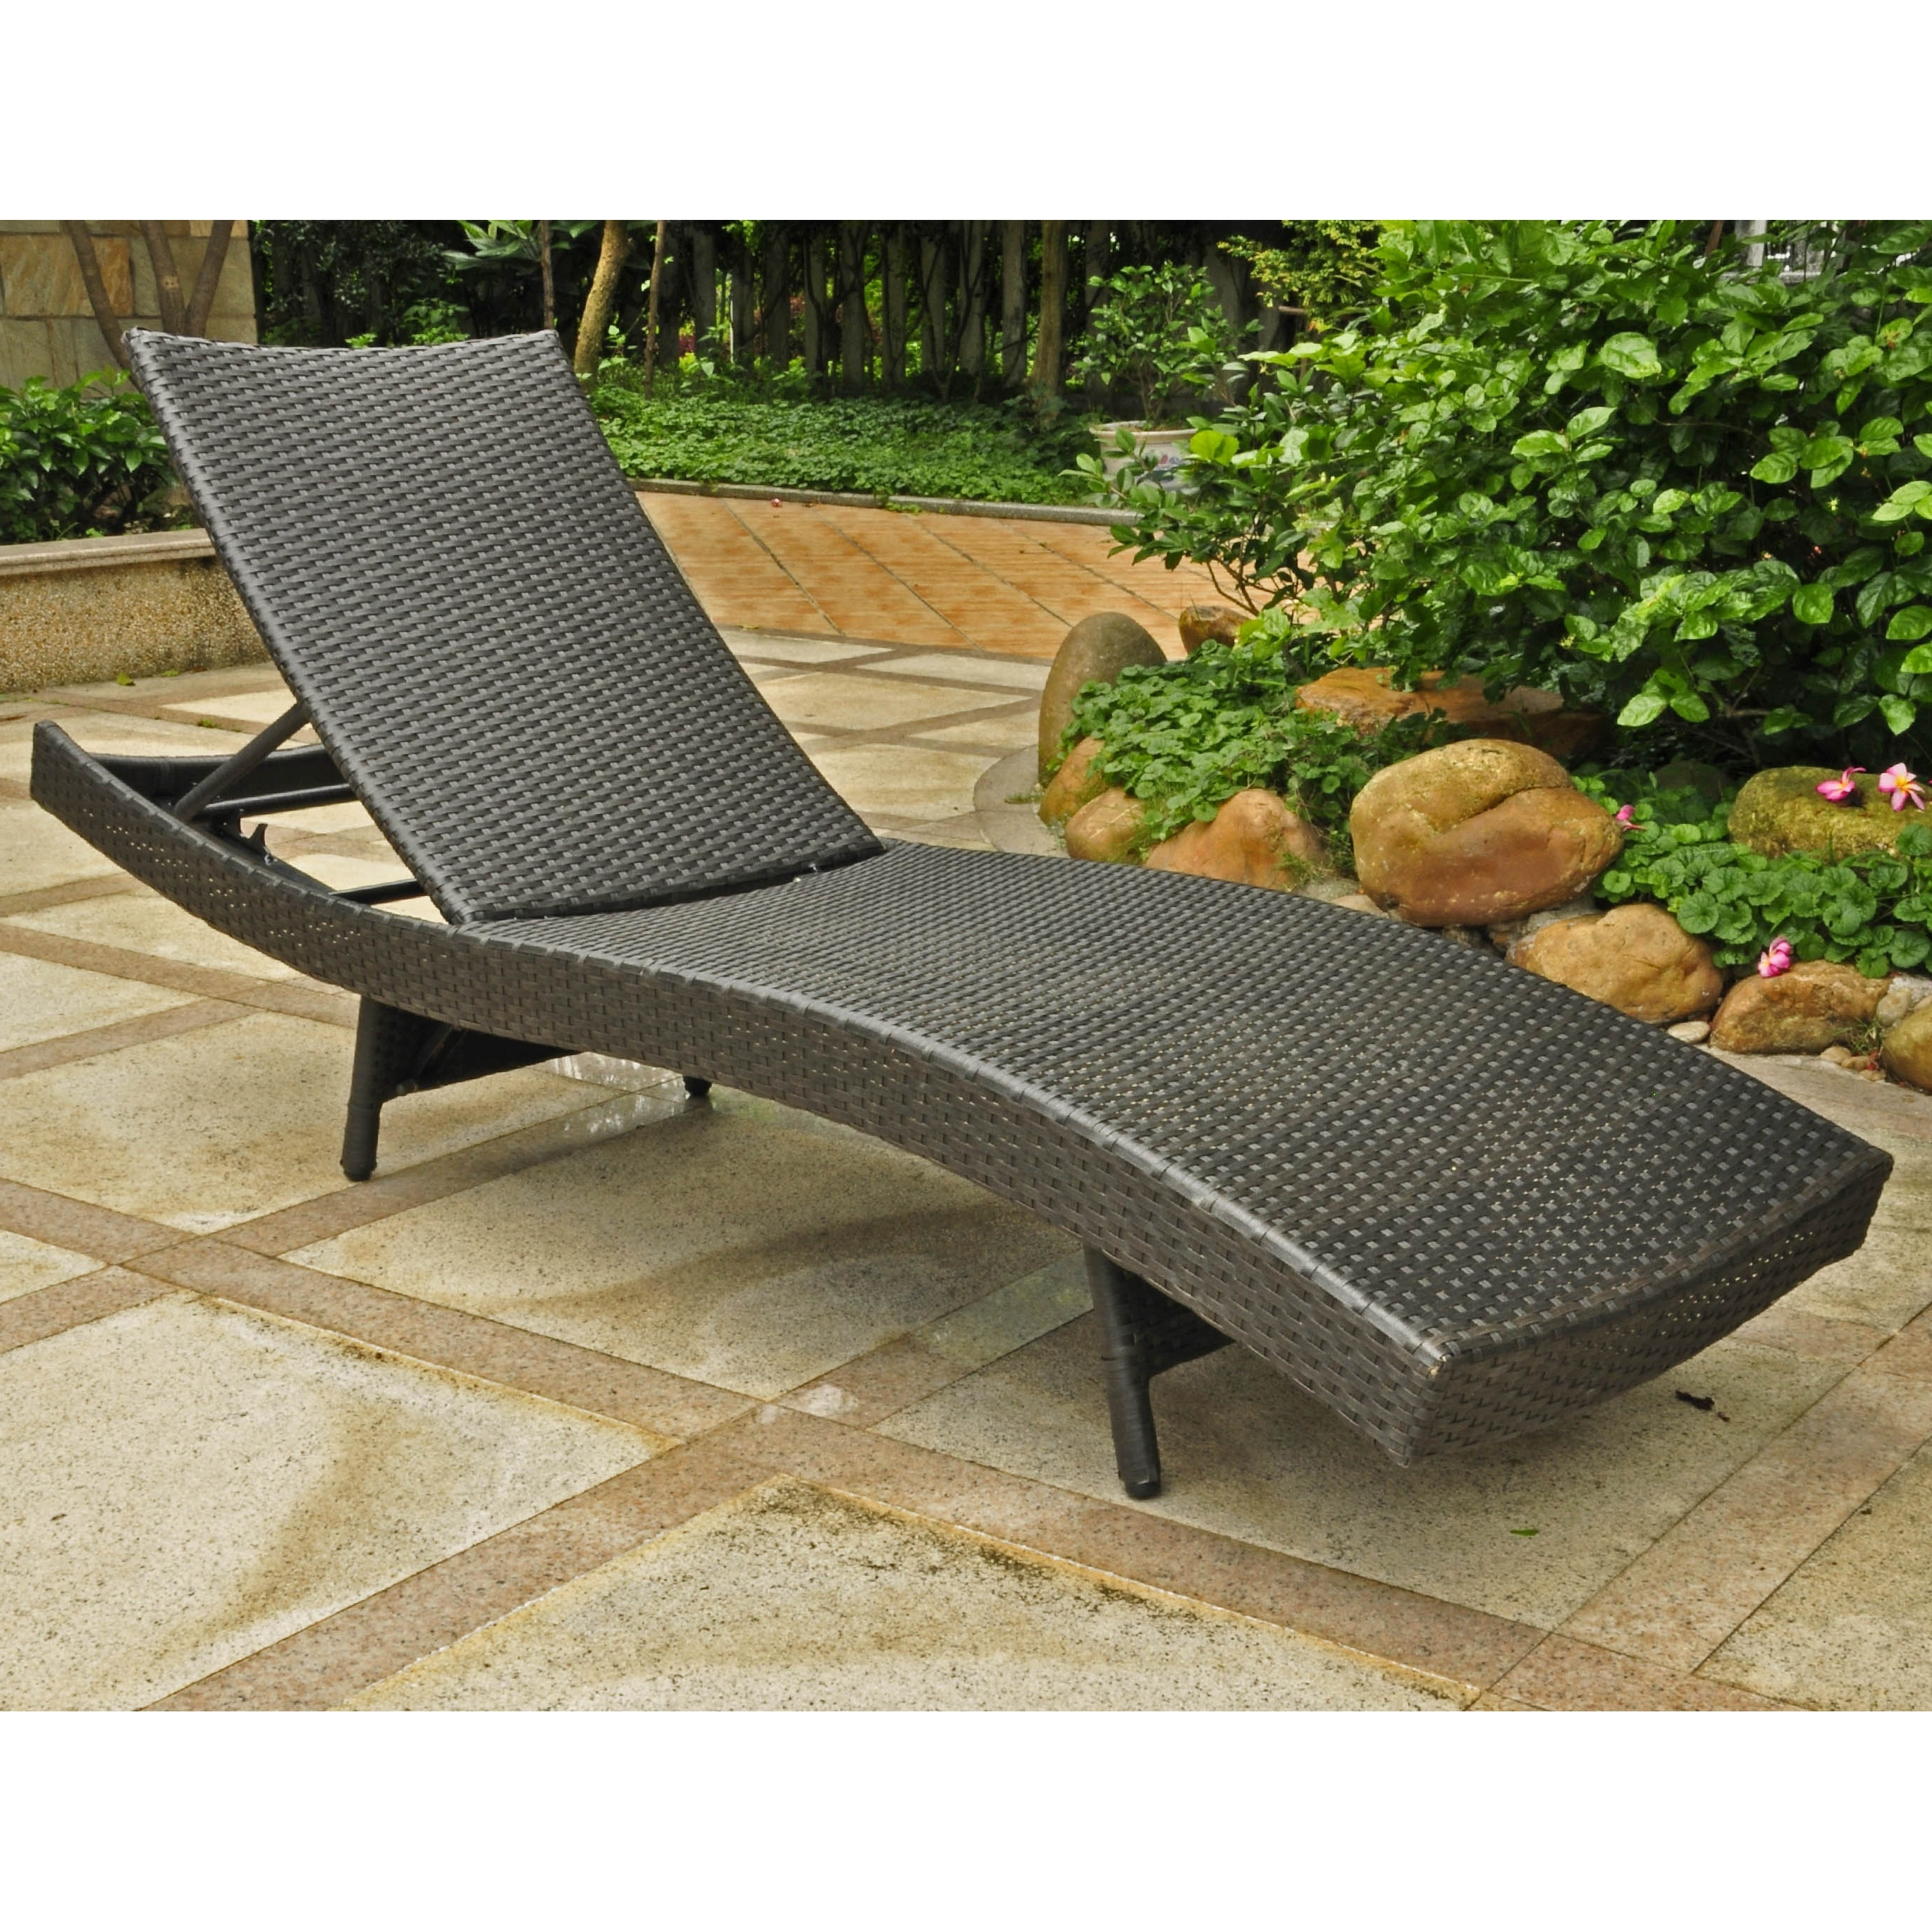 Resin Chaise Lounges Throughout Trendy Chaise Lounges (View 15 of 15)